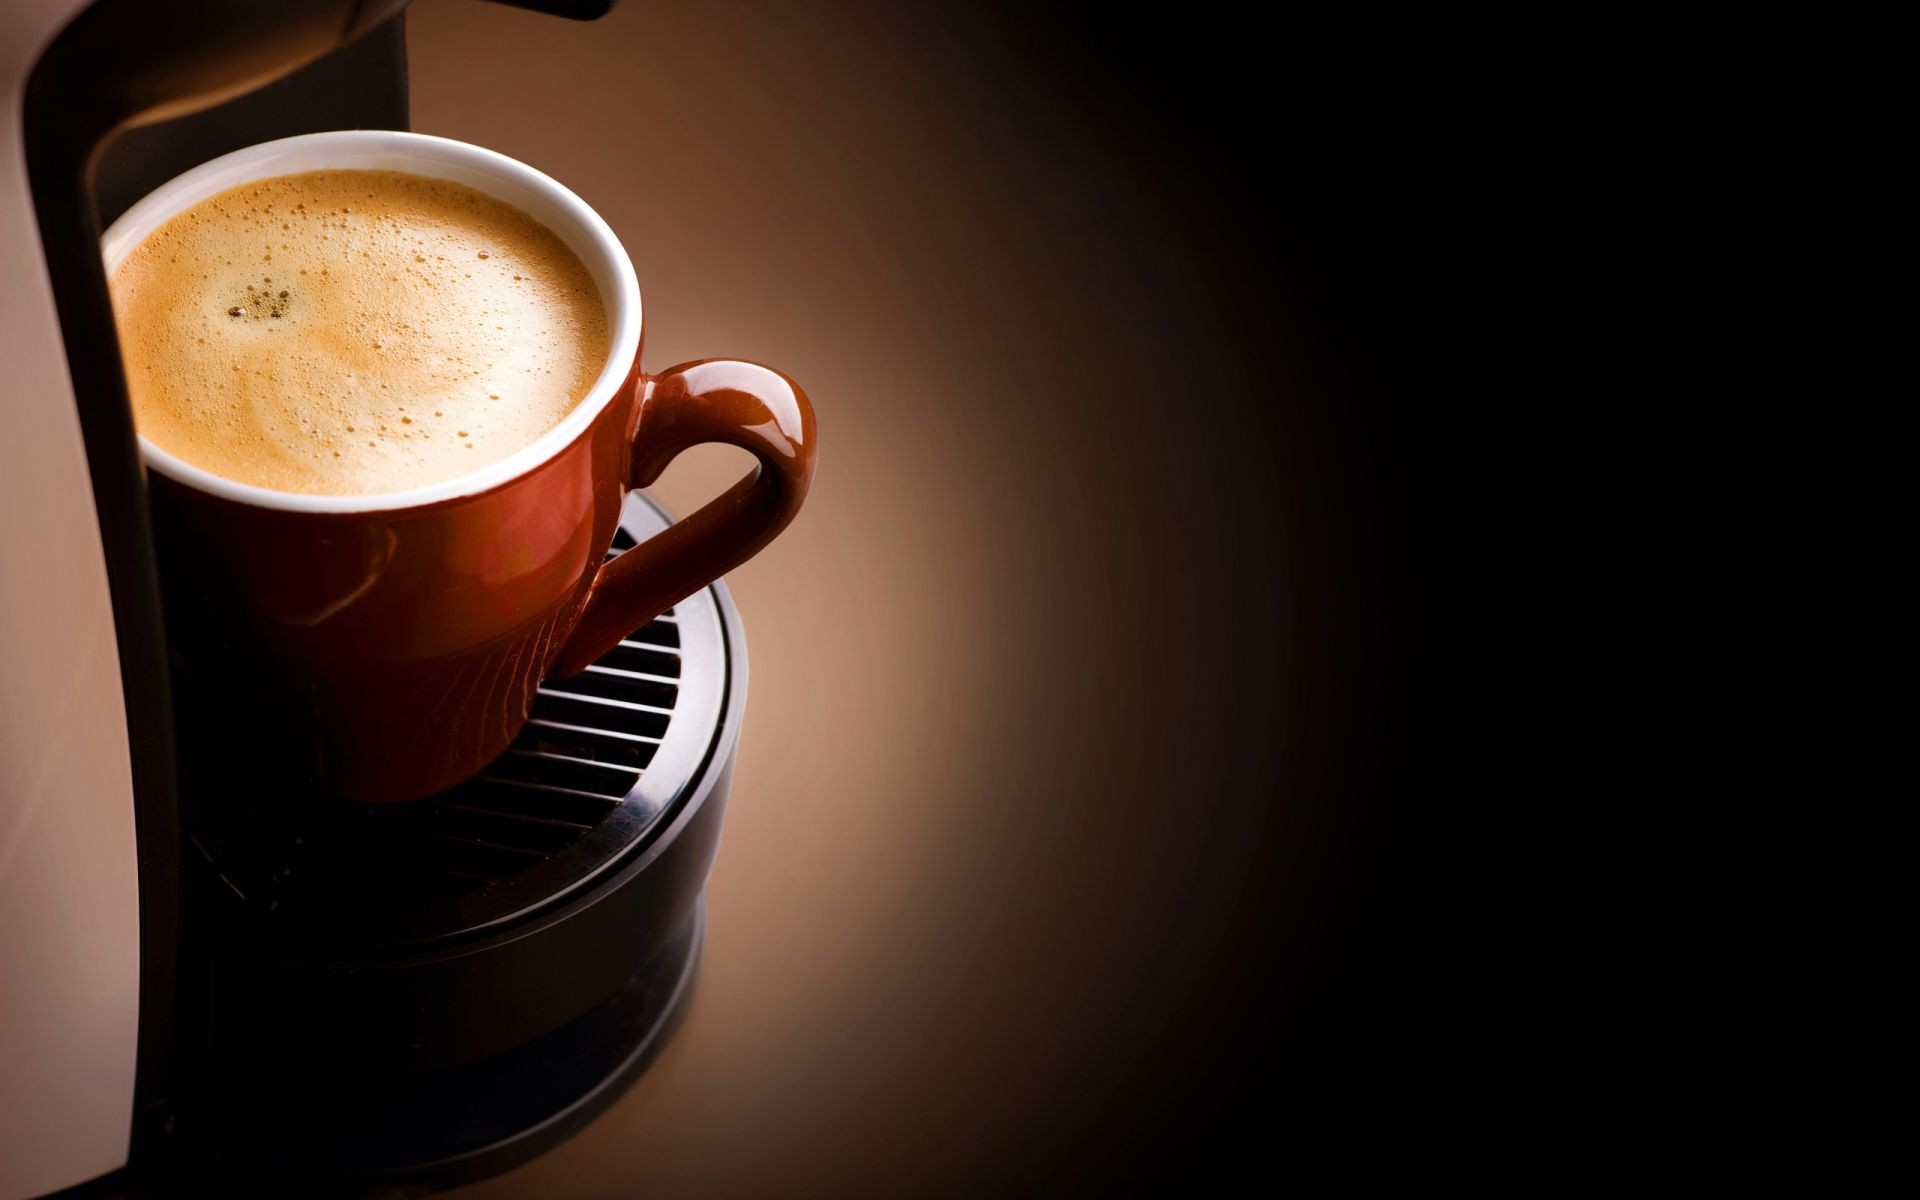 coffee drink foam espresso caffeine cappuccino dark dawn hot cup mug breakfast mocha liquid